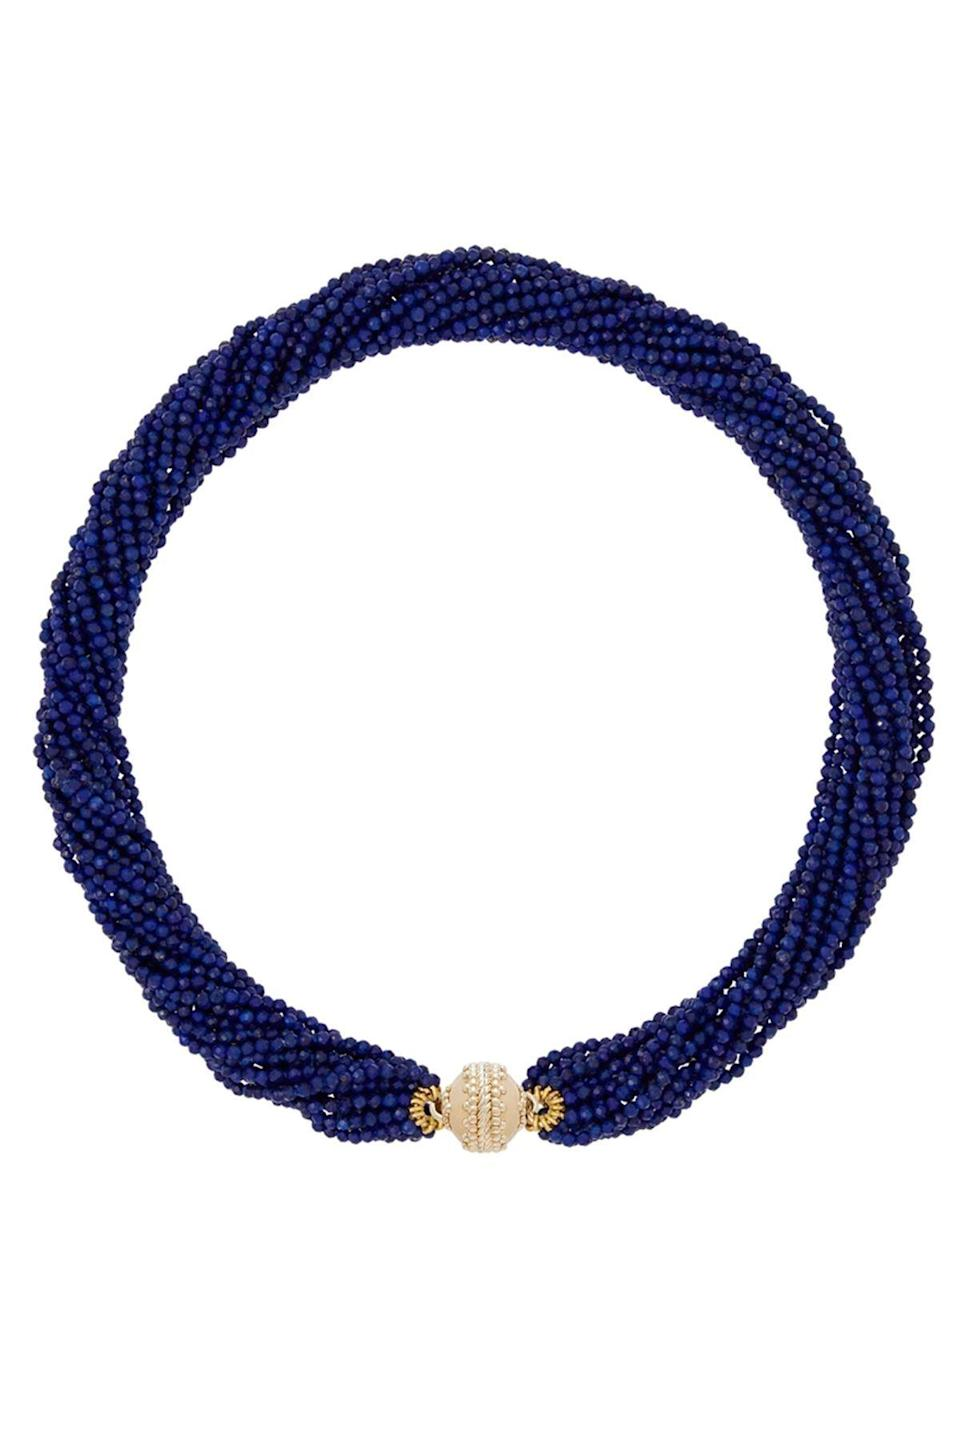 """<p><strong>Clara Williams </strong></p><p>clarawilliams.com</p><p><strong>$2800.00</strong></p><p><a href=""""https://www.clarawilliams.com/collections/necklaces-1/products/michel-lapis-multi-strand-necklace"""" rel=""""nofollow noopener"""" target=""""_blank"""" data-ylk=""""slk:Shop Now"""" class=""""link rapid-noclick-resp"""">Shop Now</a></p><p>Let's be honest, we can't get enough lapis. And with this necklace by Clara Williams, you will have some dazzling lapis on tap for whenever you (or your outfit) needs a boost. </p>"""